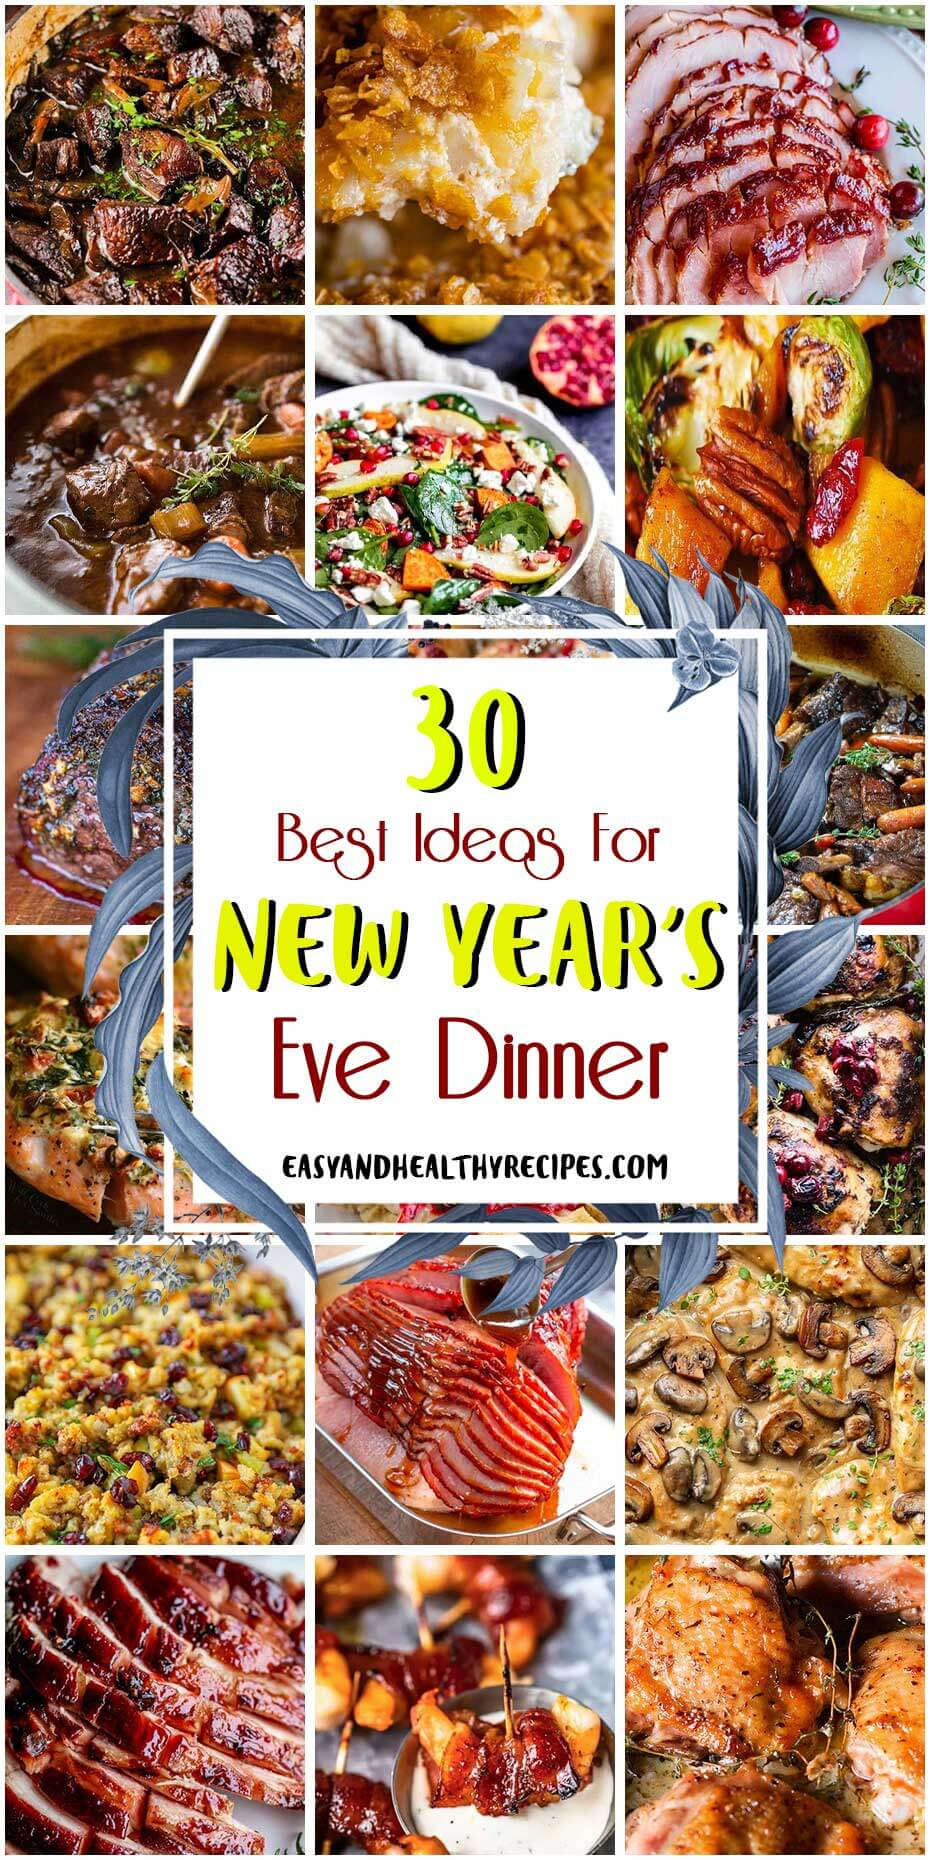 30 Best Ideas For New Year's Eve Dinner – Easy and Healthy ...